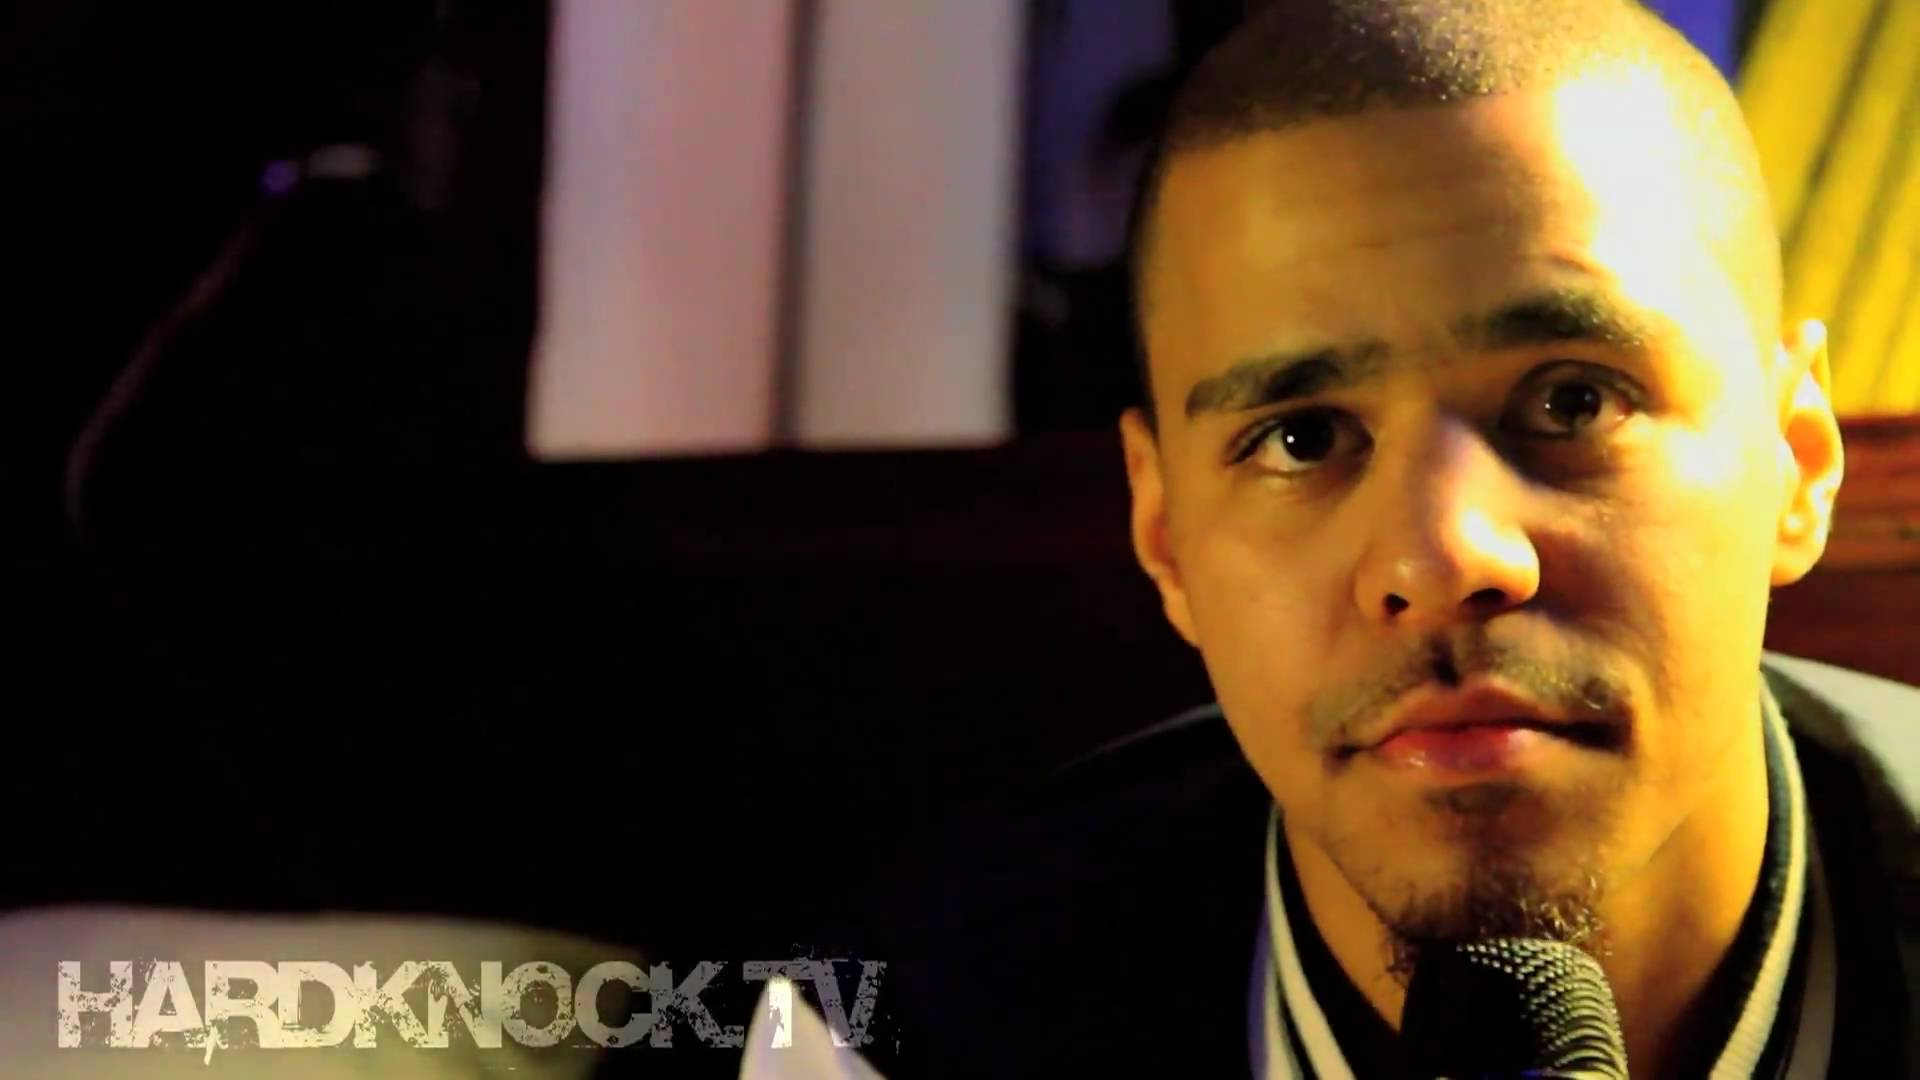 Our second J Cole interview/ with commentary (SXSW 2010) by Nick Huff Barili